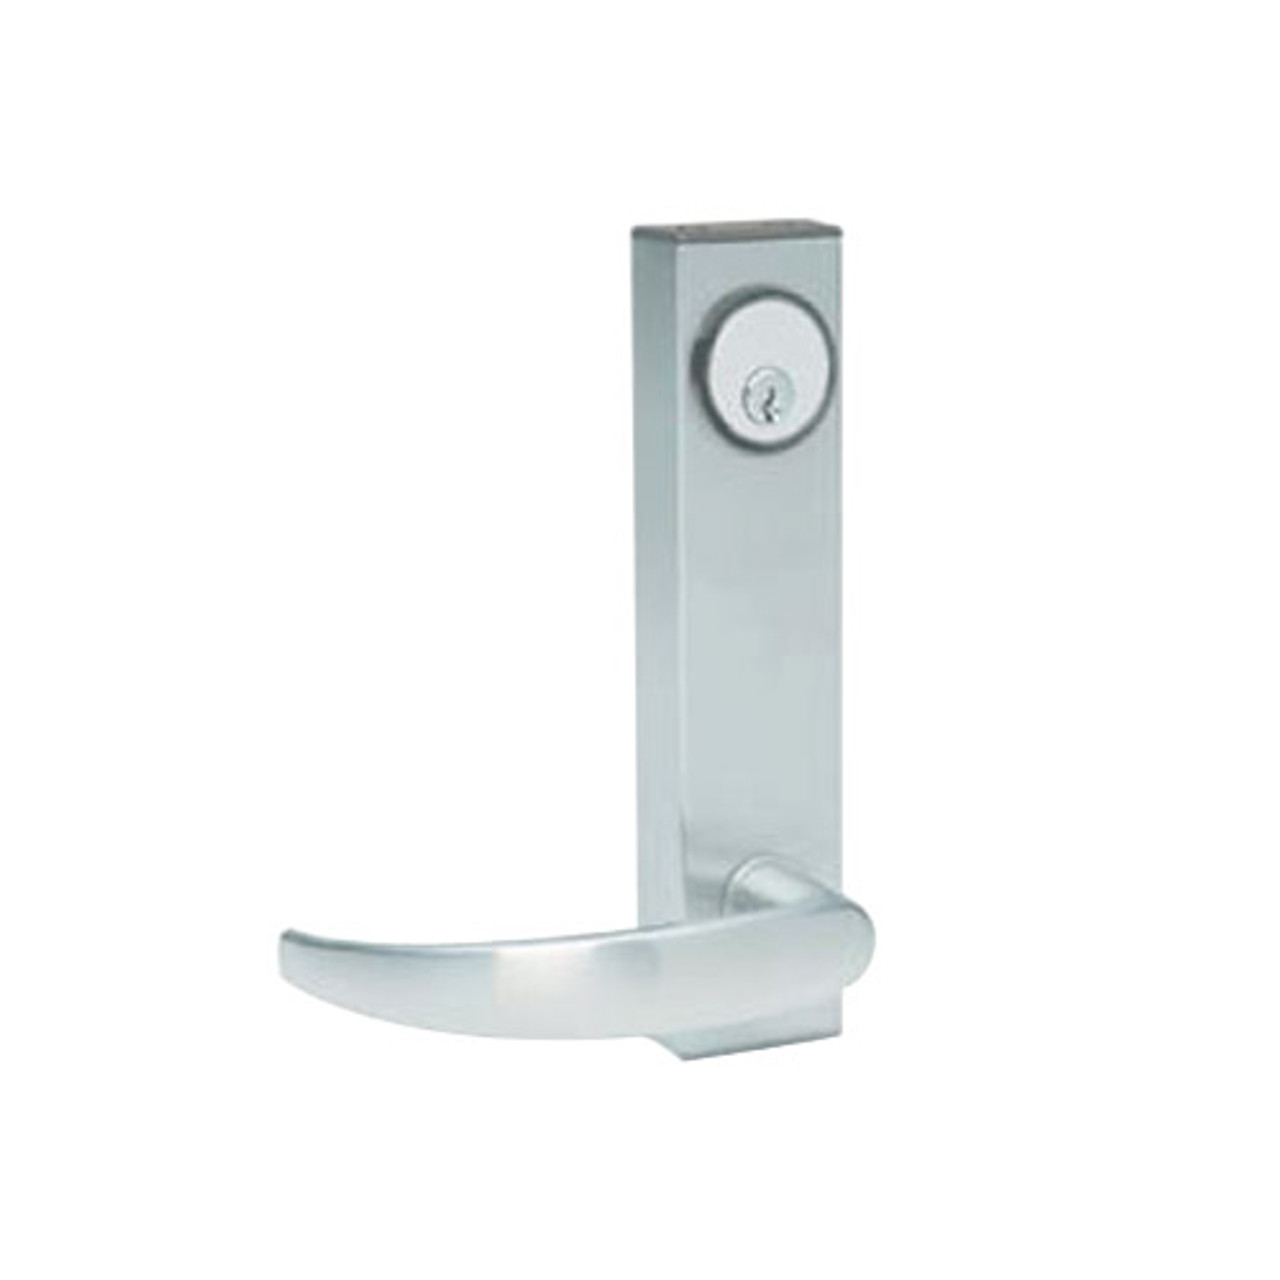 3080-01-0-9U-US32 Adams Rite Standard Entry Trim with Curve Lever in Bright Stainless Finish